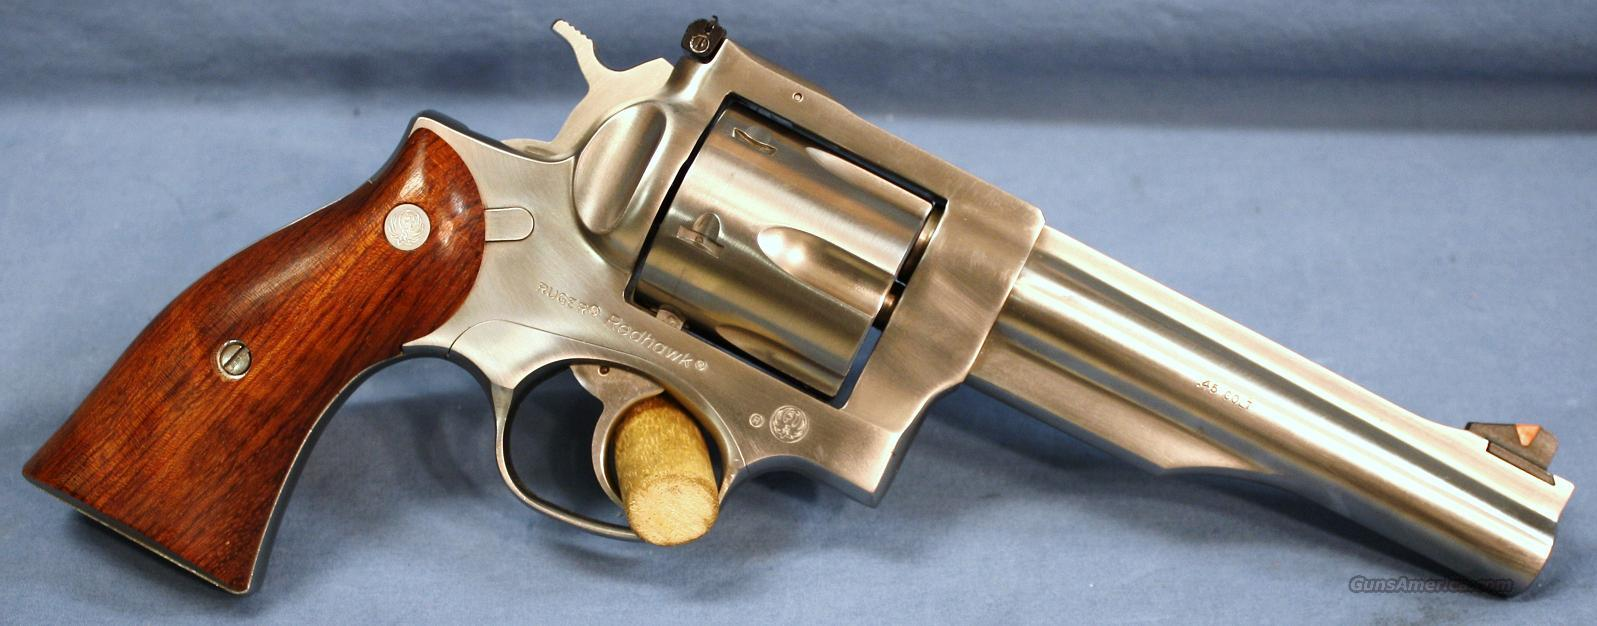 Ruger Redhawk Double Action Revolver .45 Colt Made in 1998  Guns > Pistols > Ruger Double Action Revolver > Redhawk Type